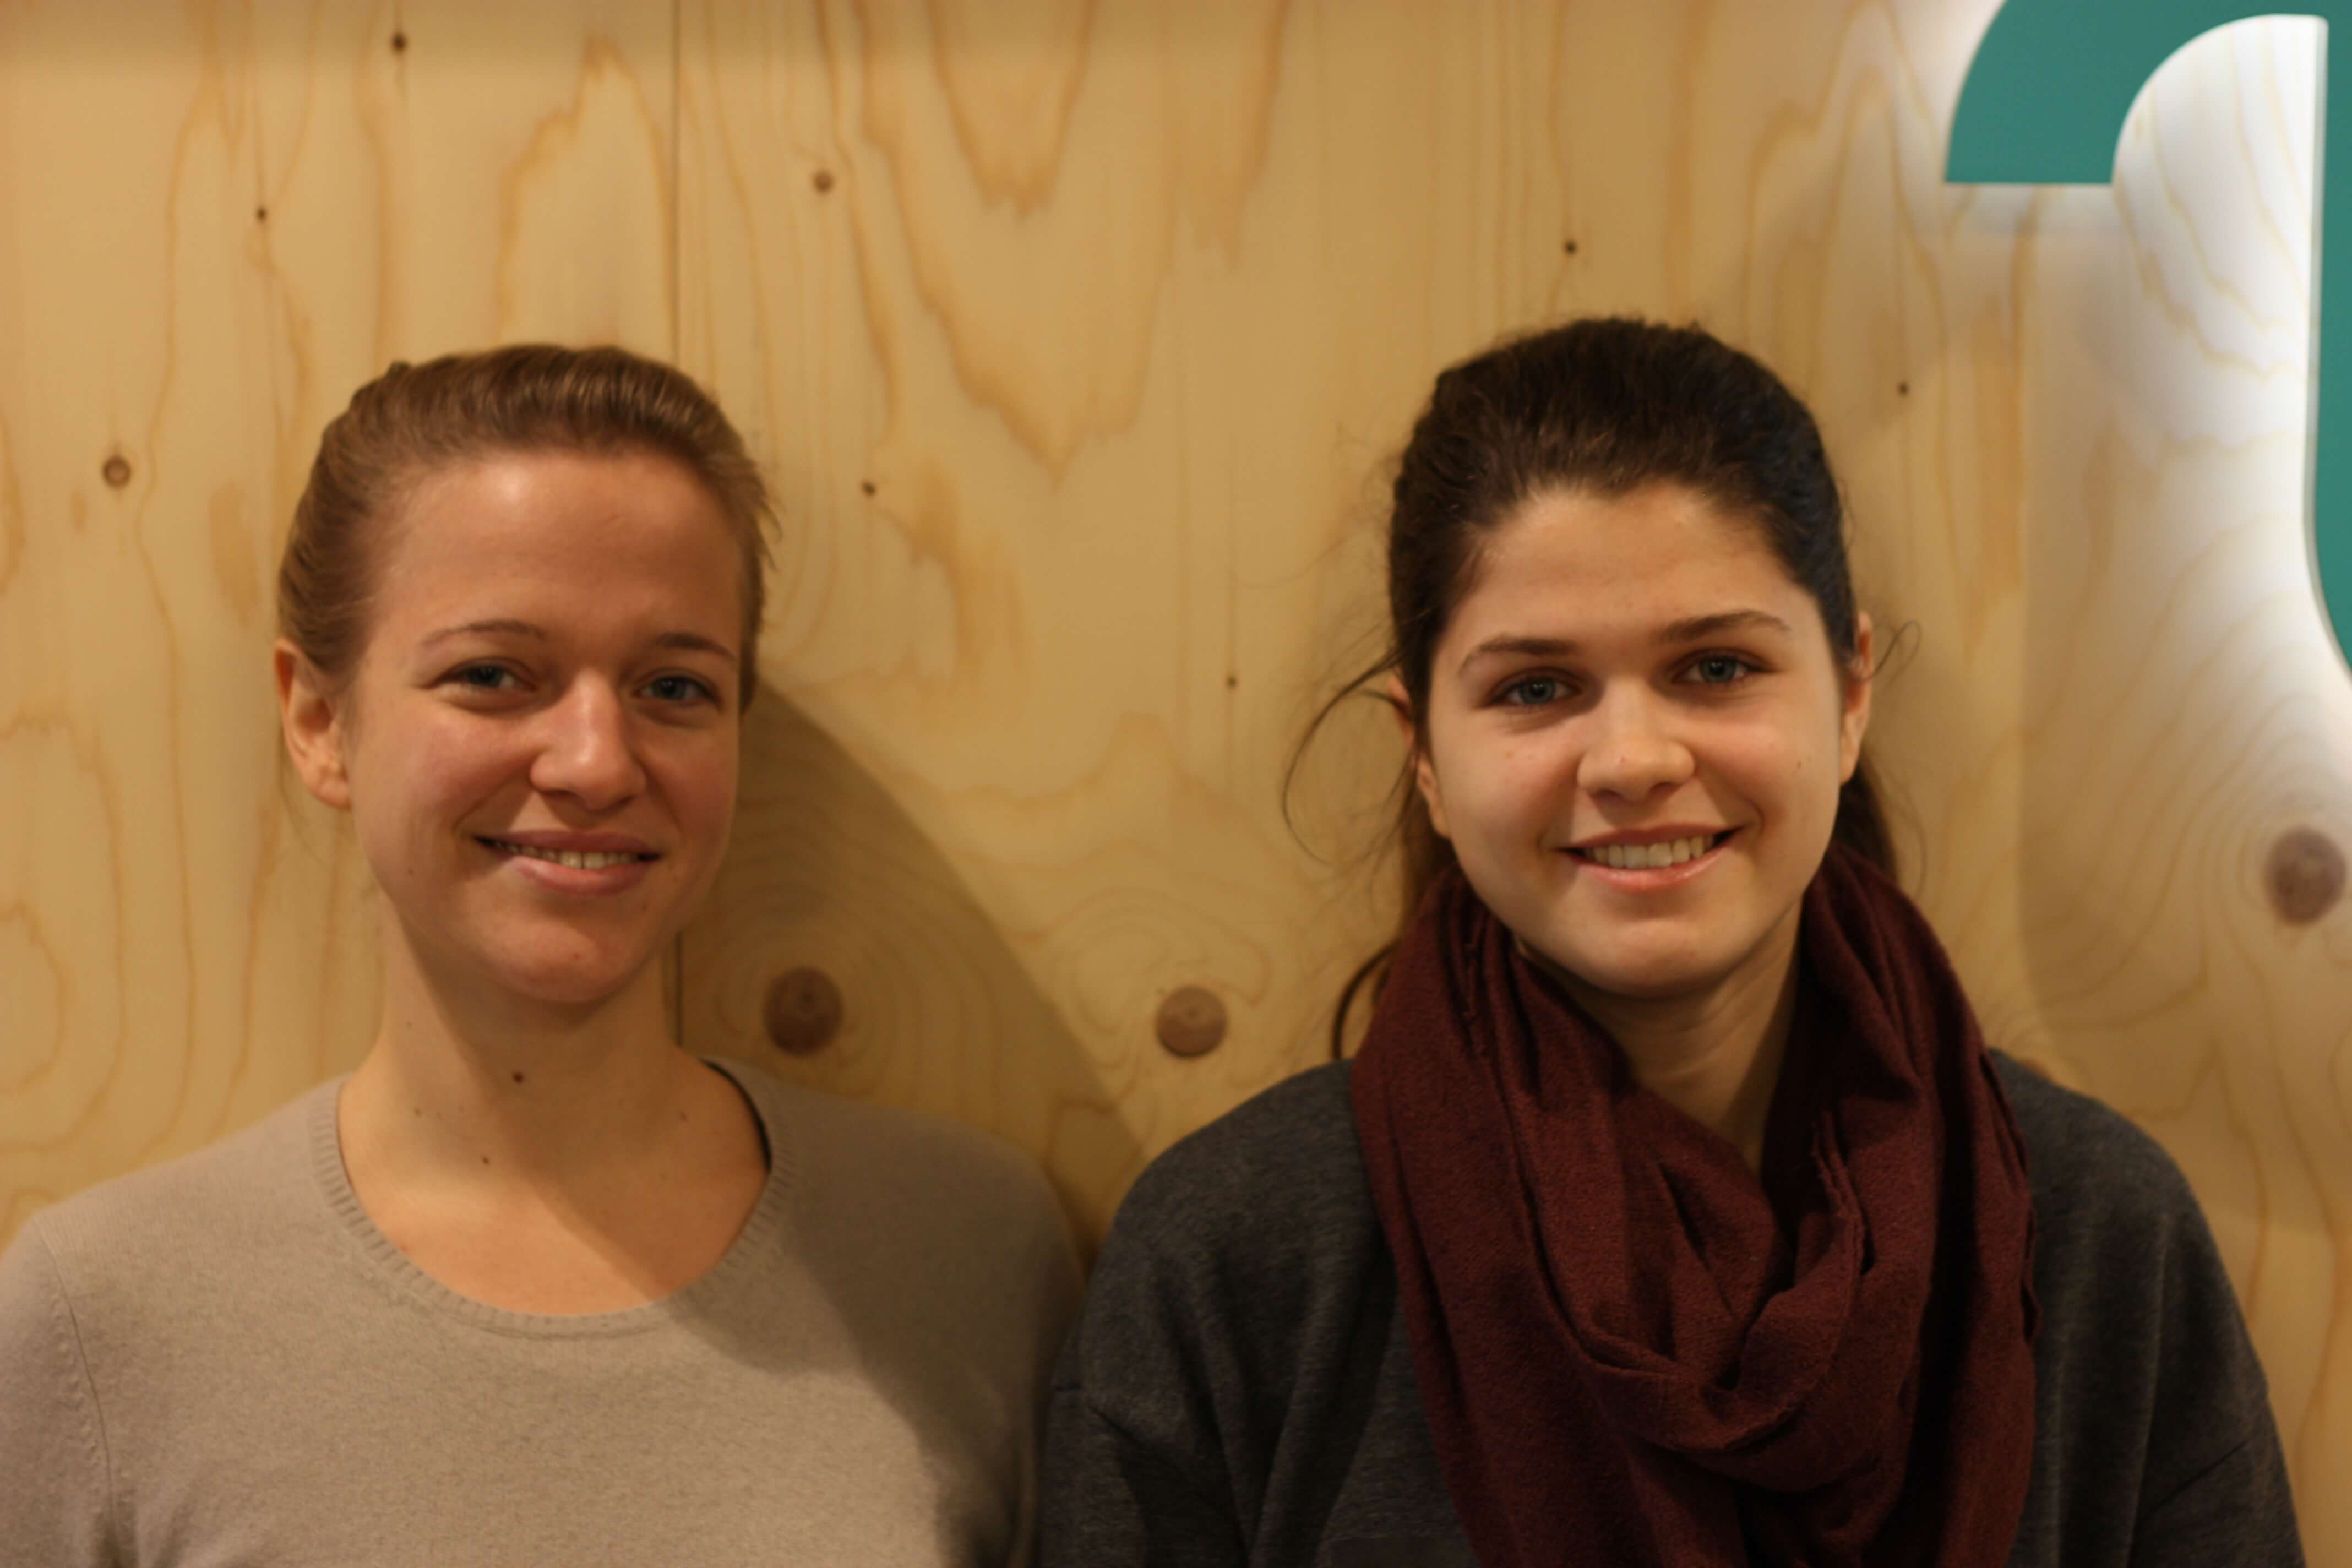 Meet the Tiqets interns – Maike and Pia